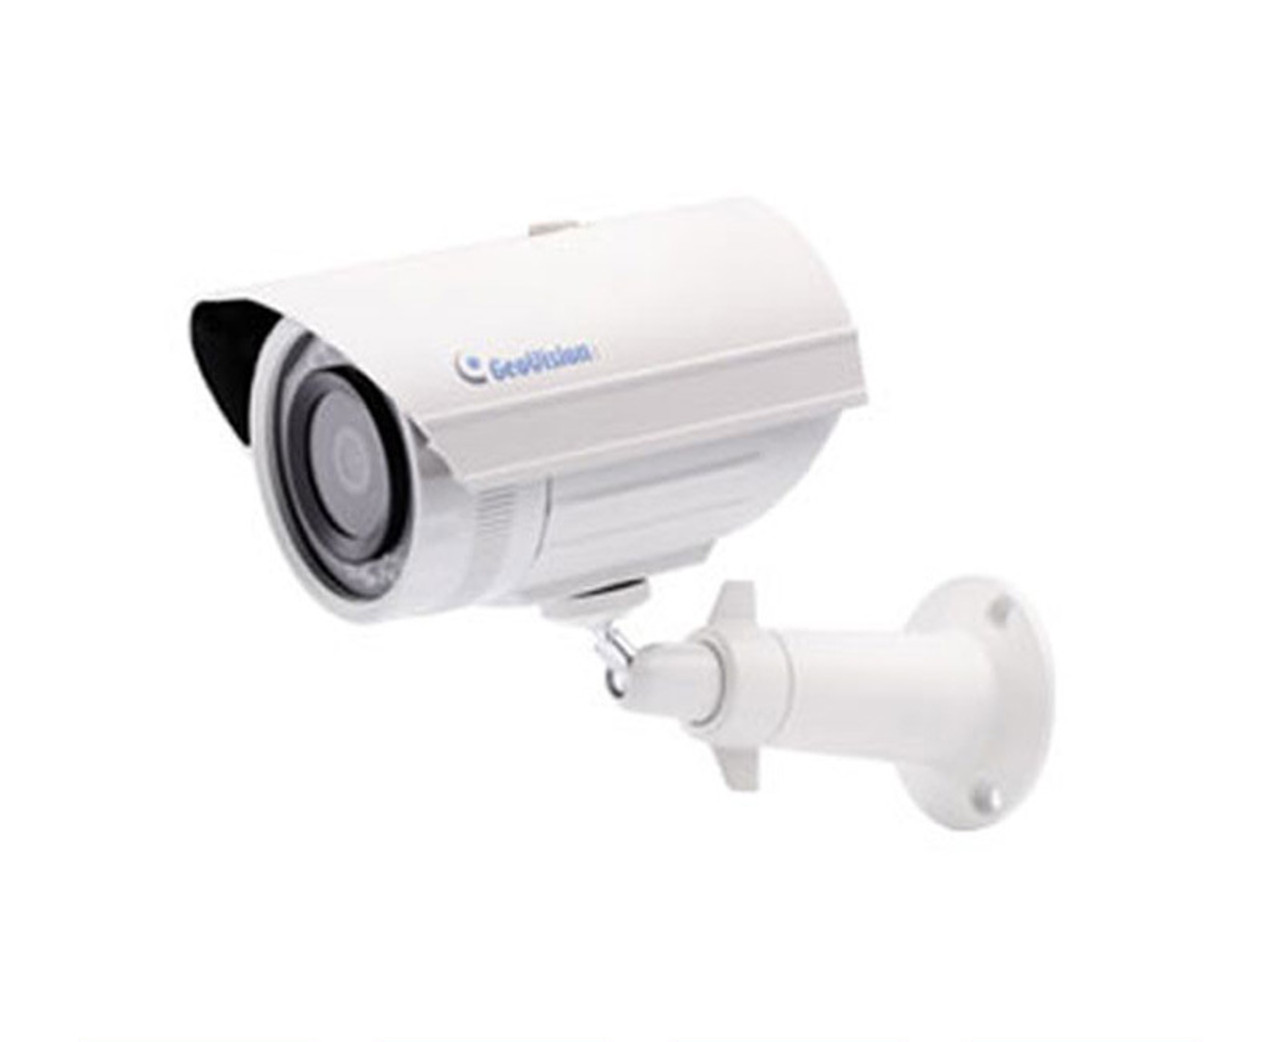 Best Indoor Security Camera 2020 Geovision GV EBL2100 2F 2MP IR Outdoor Bullet IP Security Camera